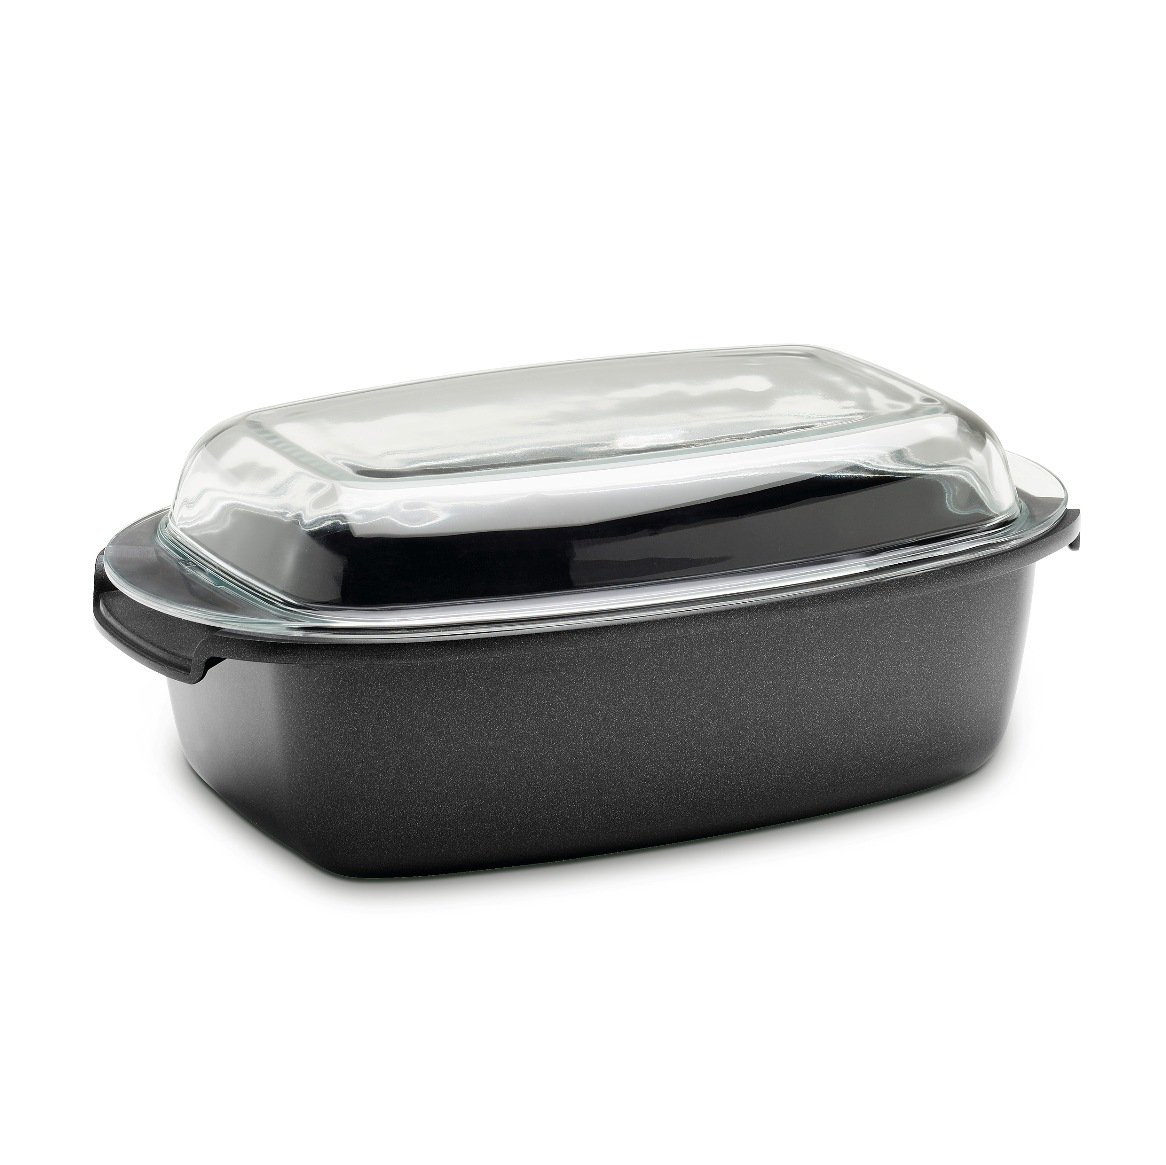 Berndes 695964 SignoCast Multi-Purpose Roaster with Glass Lid, 13 Inches by 8.5 Inches